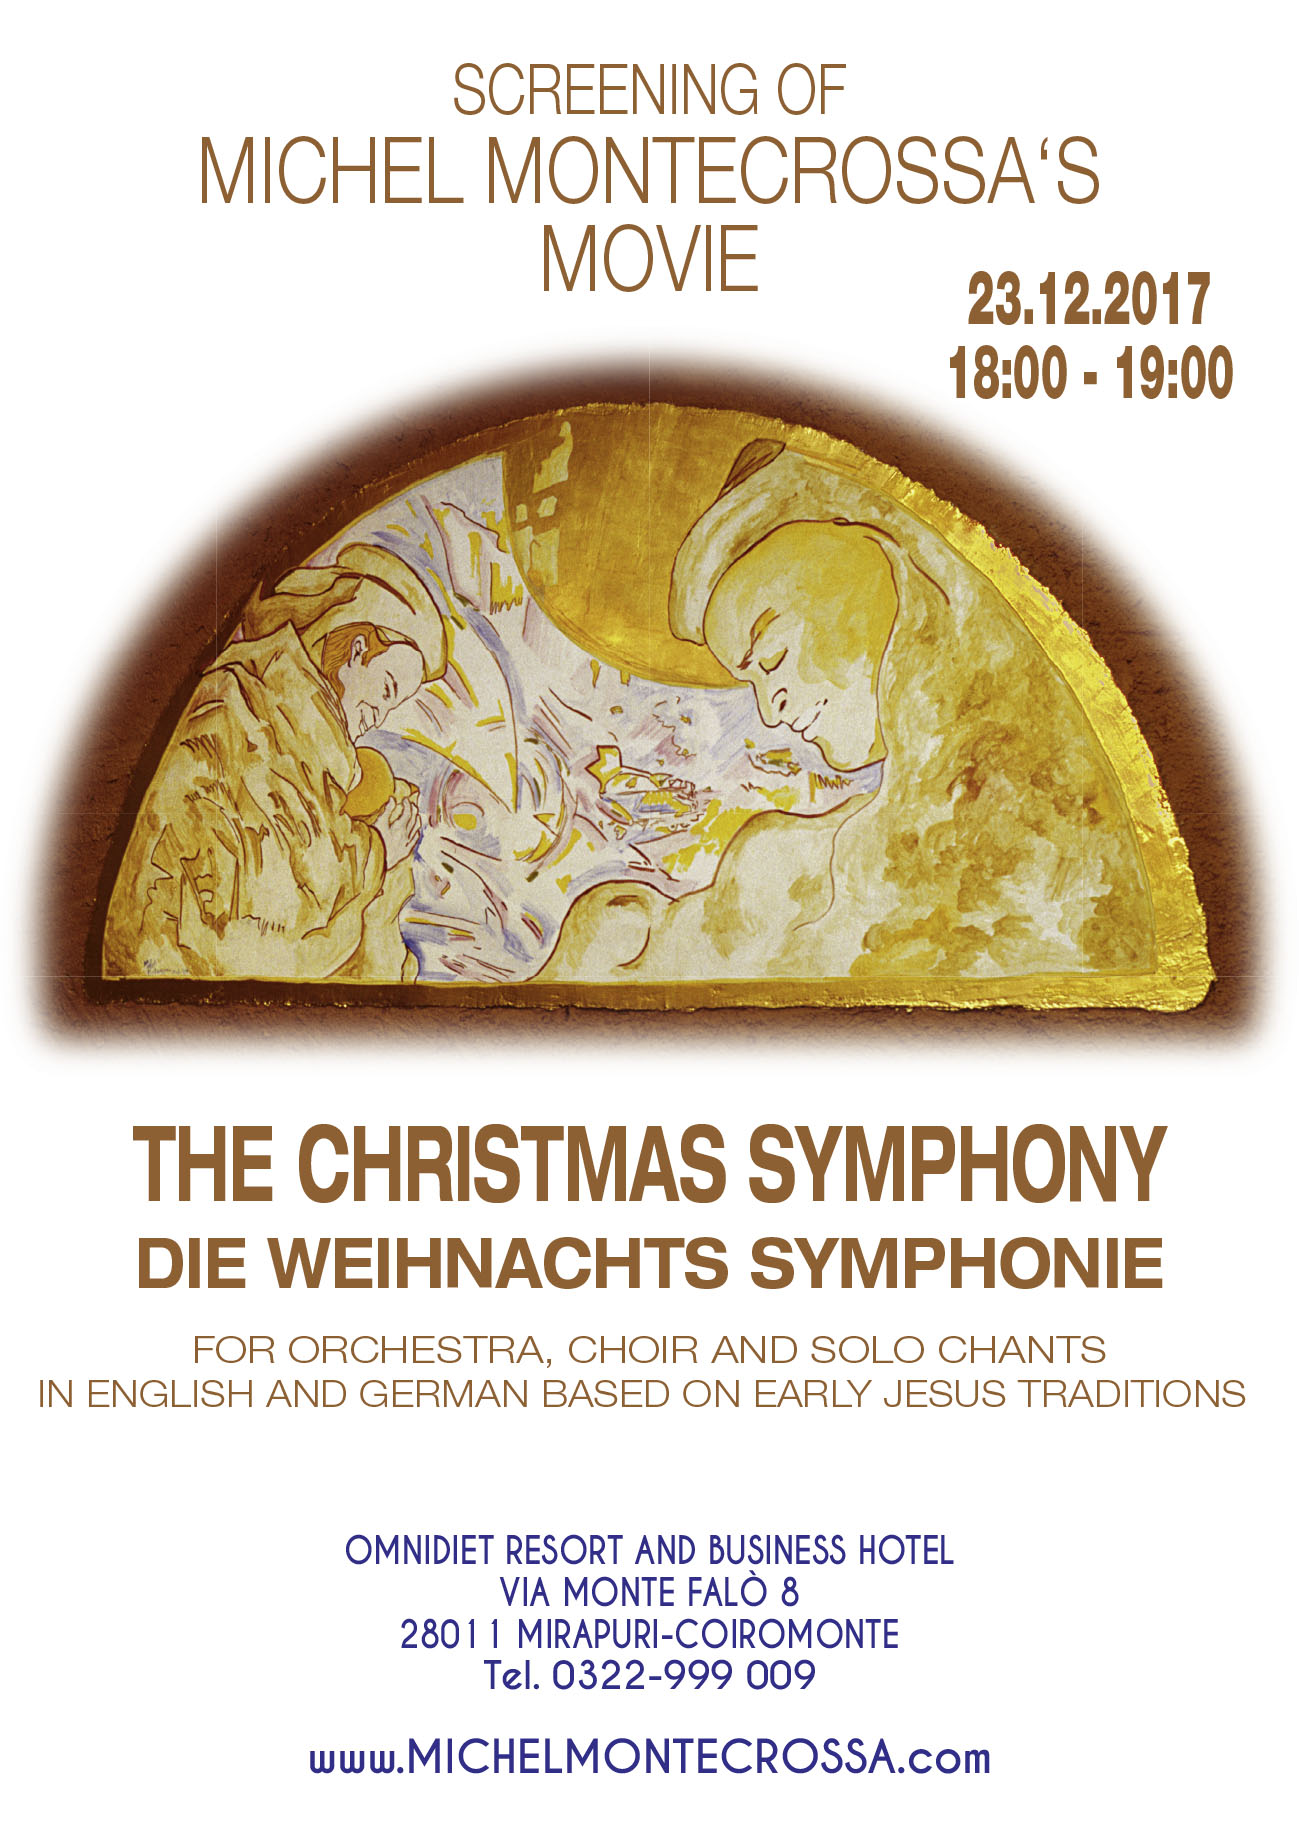 Screening: Michel Montecrossa's touching and tender movie 'The Christmas Symphony – Weihnachts Symphonie' on 23rd December 2017 at the Omnidiet Music-Hall in Mirapuri-Coiromonte, Italy